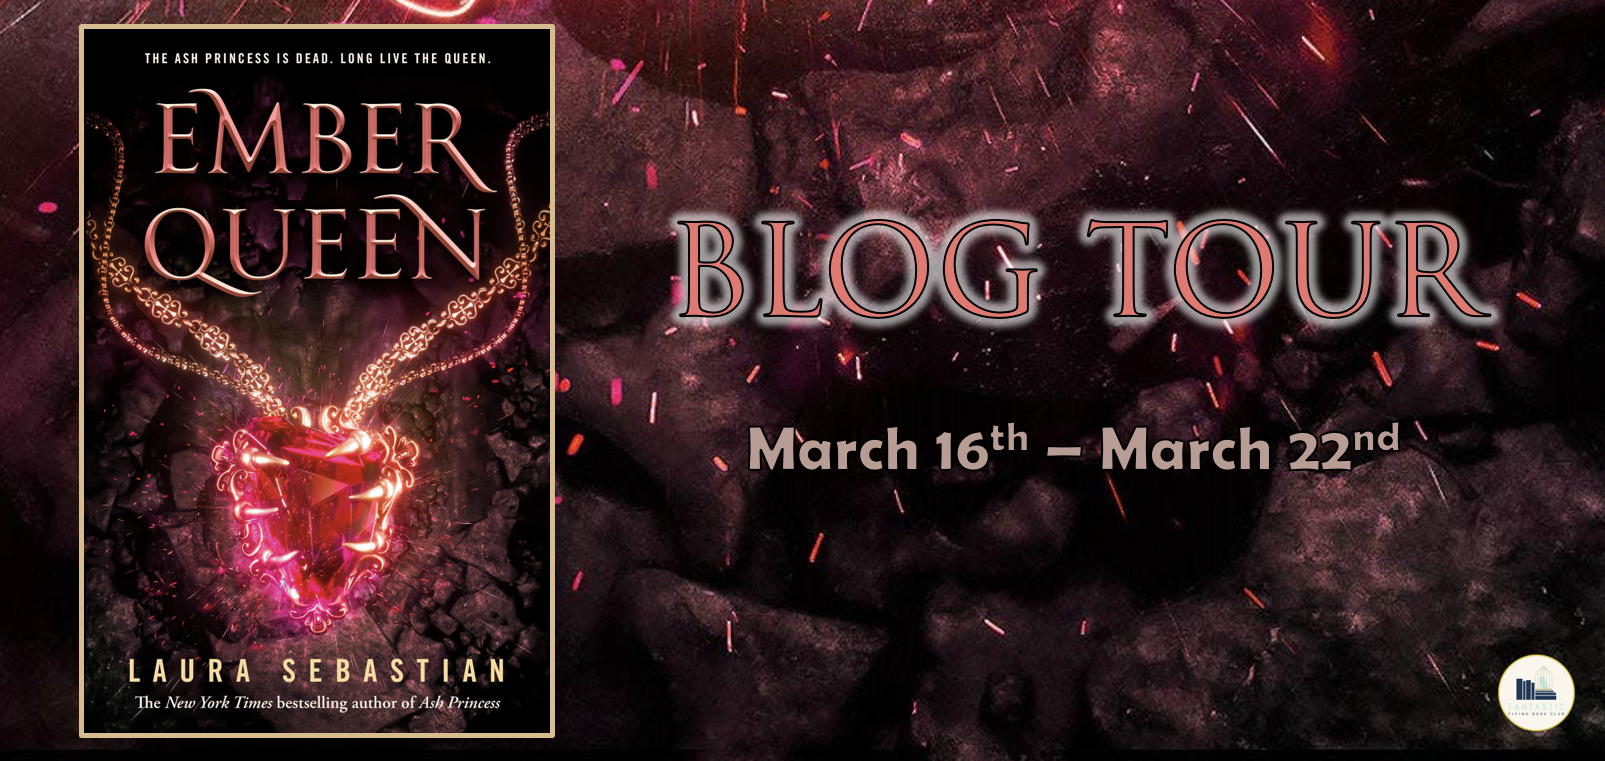 Win (1) copy of THE EMBER QUEEN by Laura Sebastian (US Only)